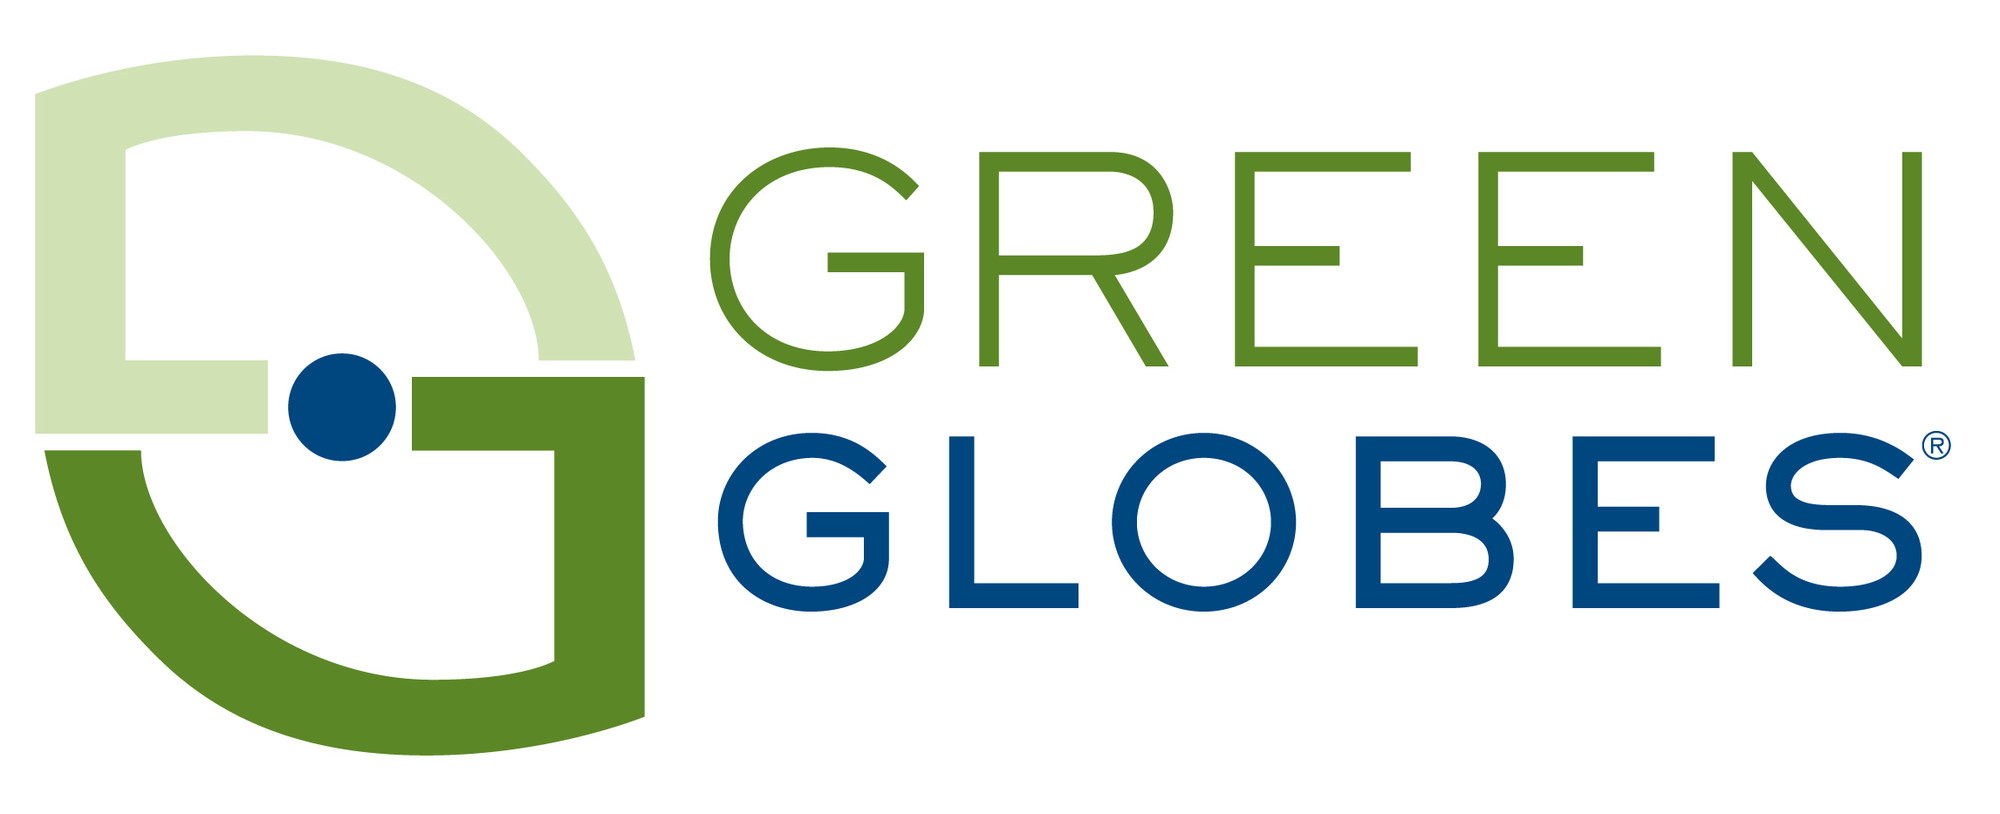 Competition For Leed Gbis Green Globes Shakes Up Building